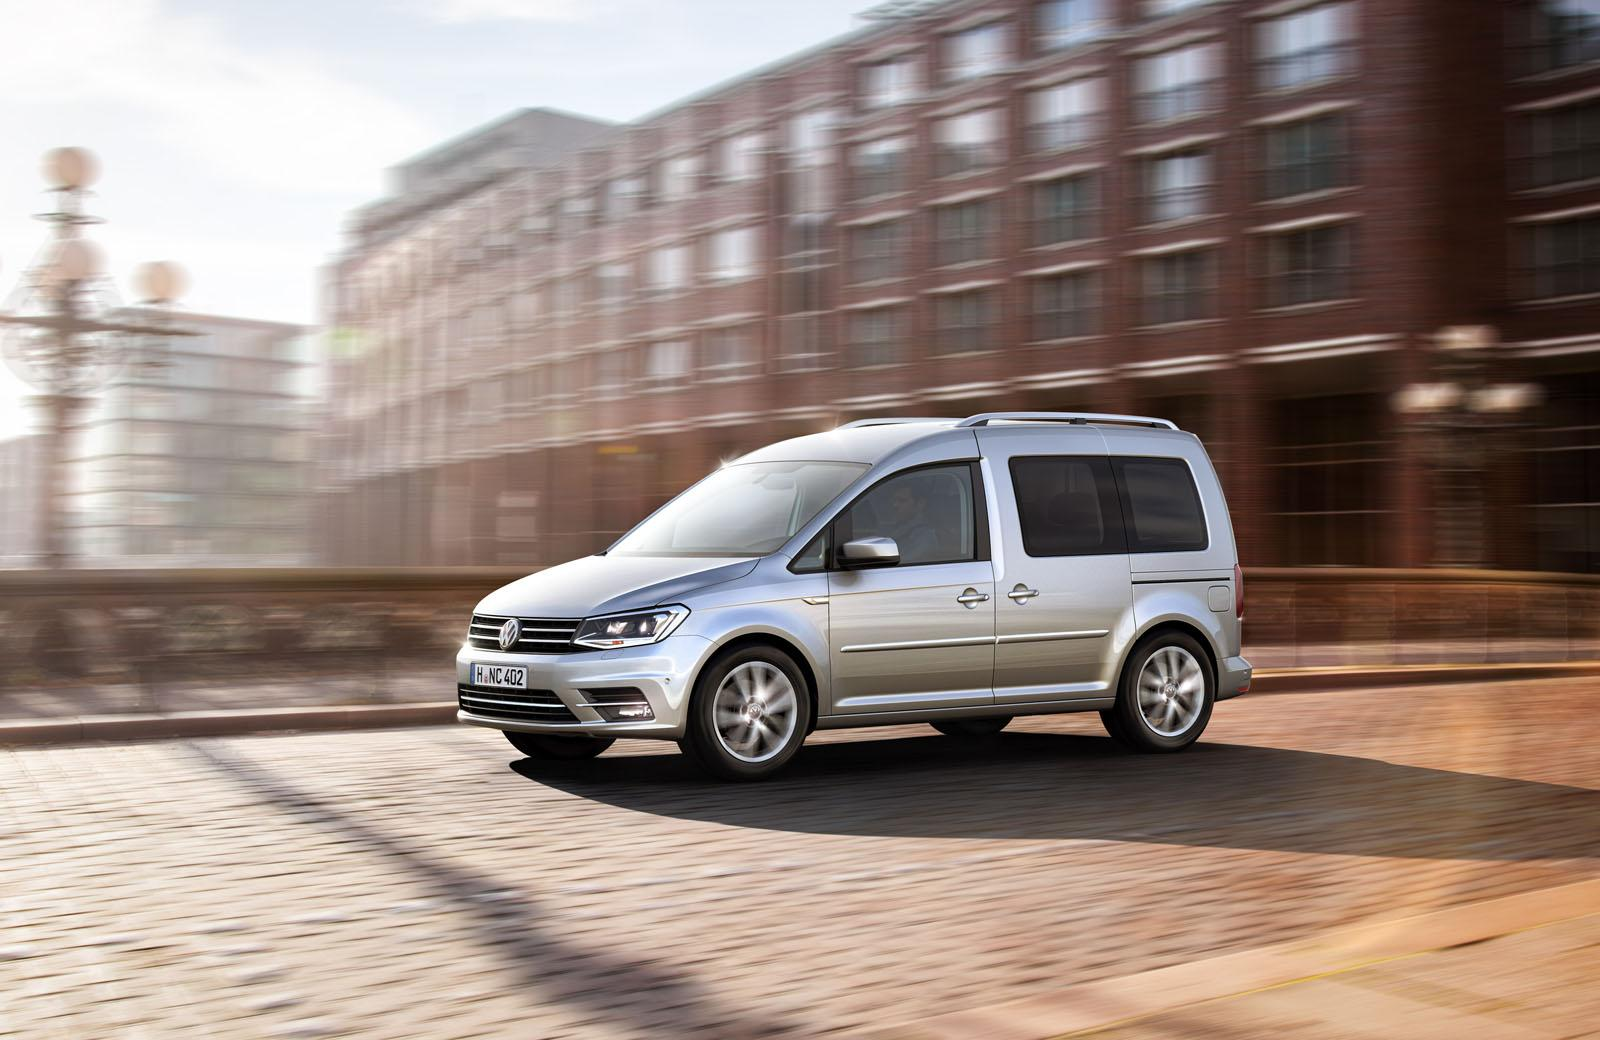 2015 volkswagen caddy unveiled with new 1 0 tsi 3 cylinder turbo engine autoevolution. Black Bedroom Furniture Sets. Home Design Ideas